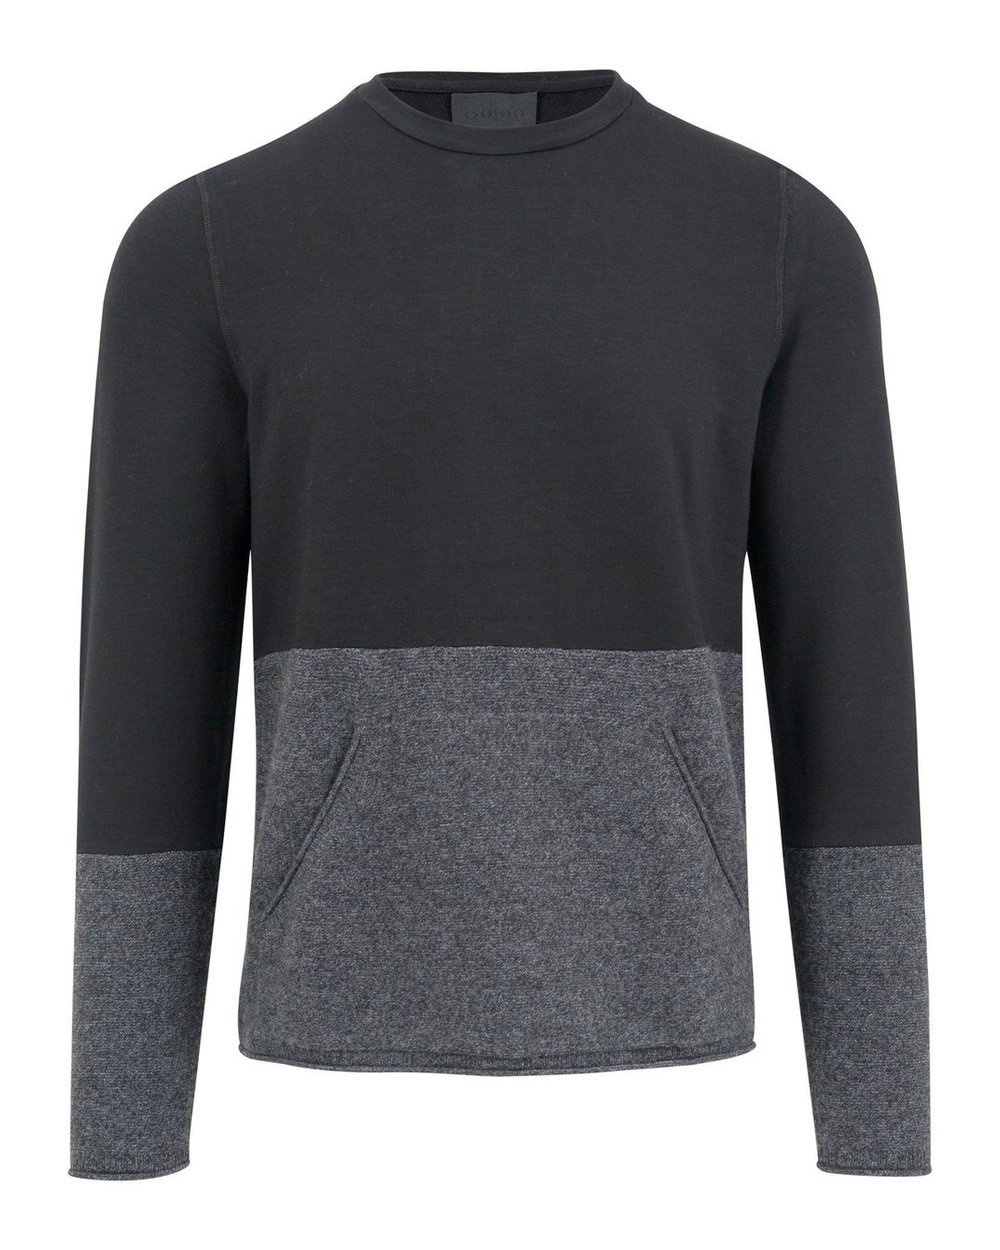 men-musk-mixed-media-crewneck-with-kangaroo-pocket-1_1080x.jpg